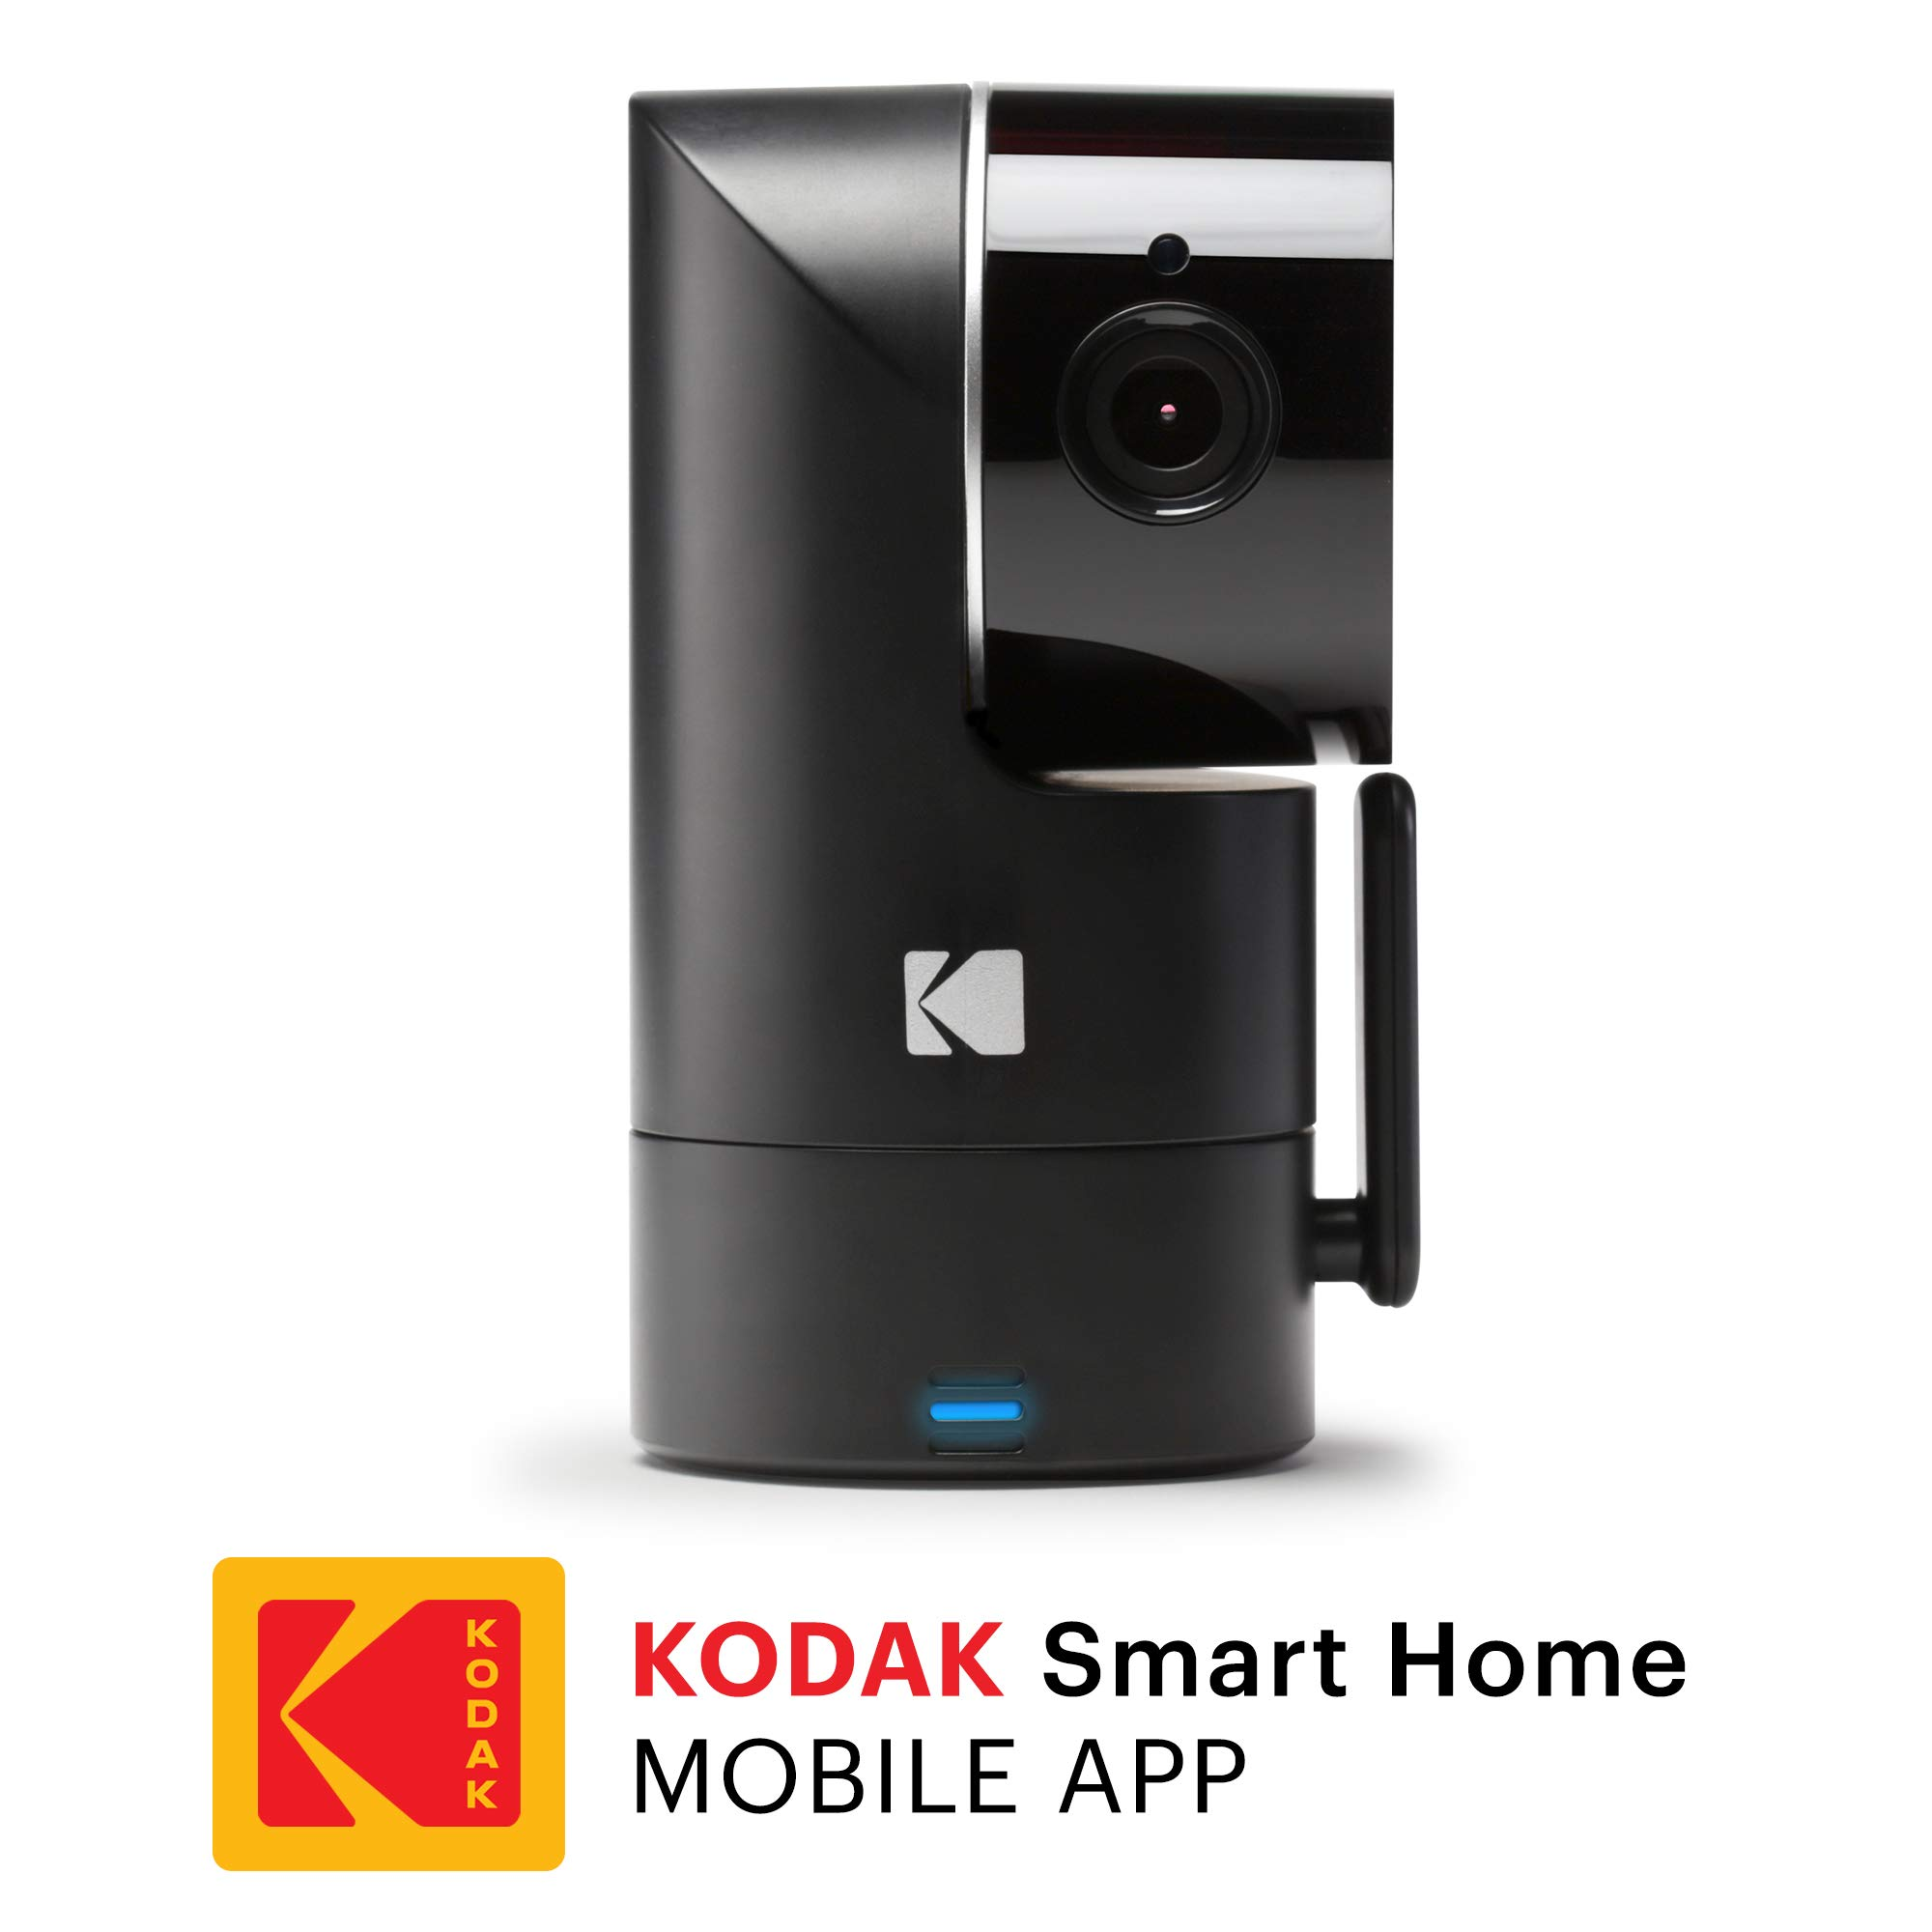 KODAK Cherish F685 Home Security Camera - Tilt/Pan/Zoom 1080p Camera, Night Vision, 120-degree View, Rechargeable Batteries and WiFi Mobile App